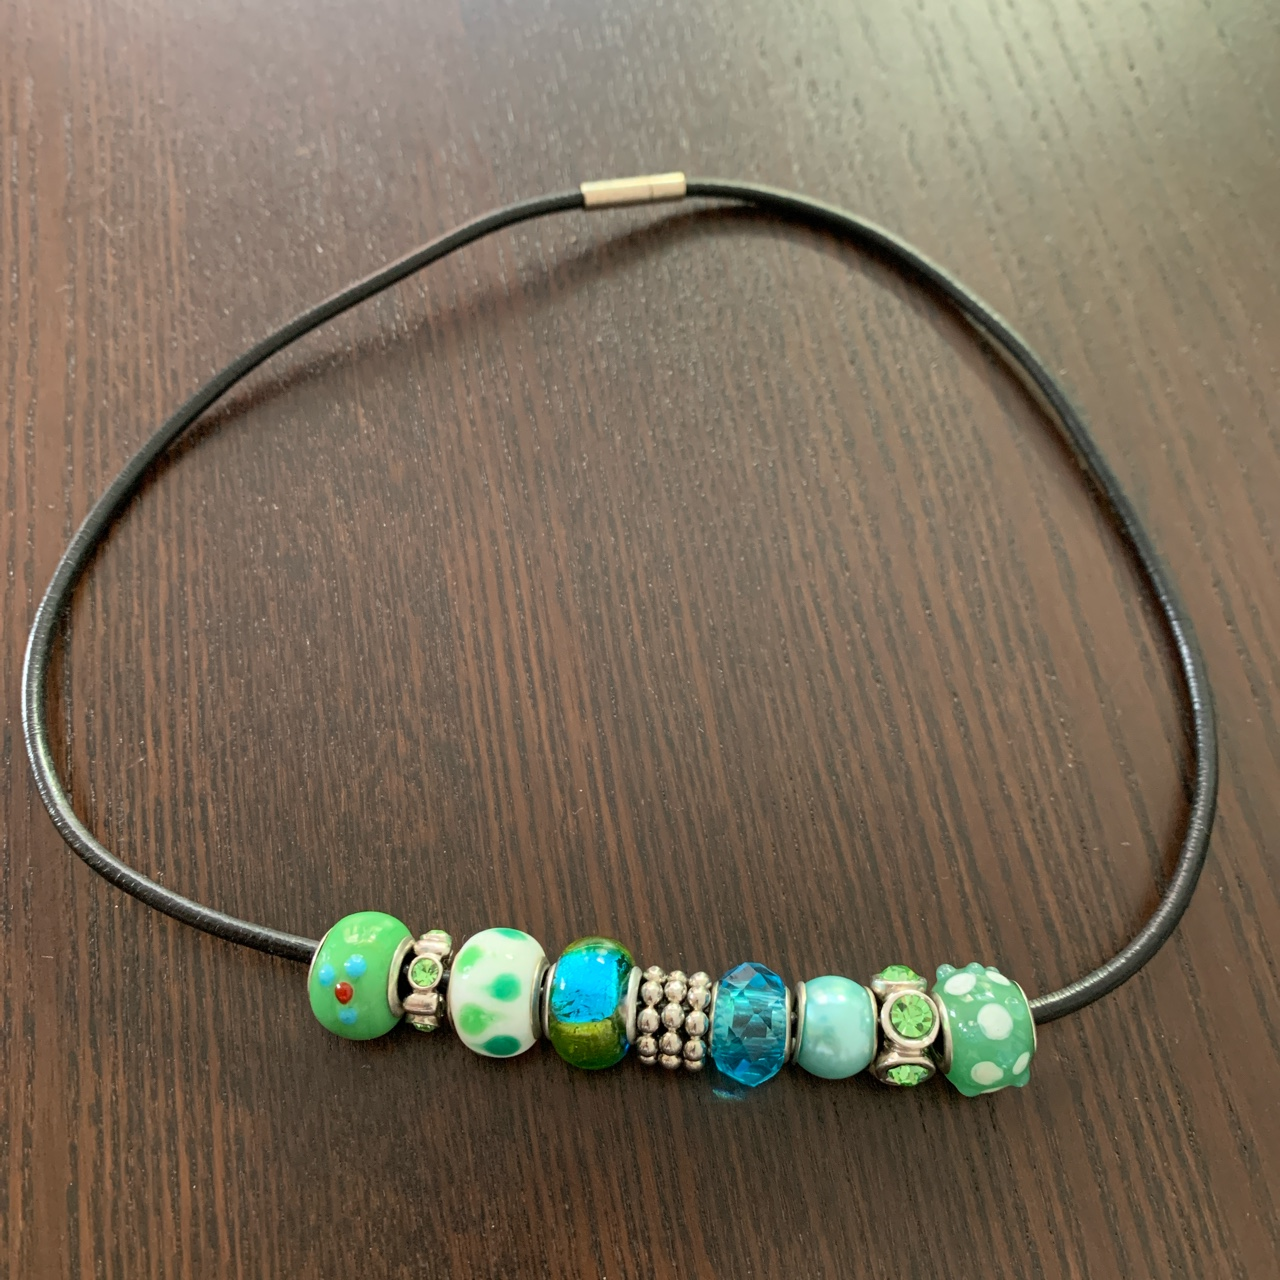 Product Image 1 - Glass and crystal charm cord